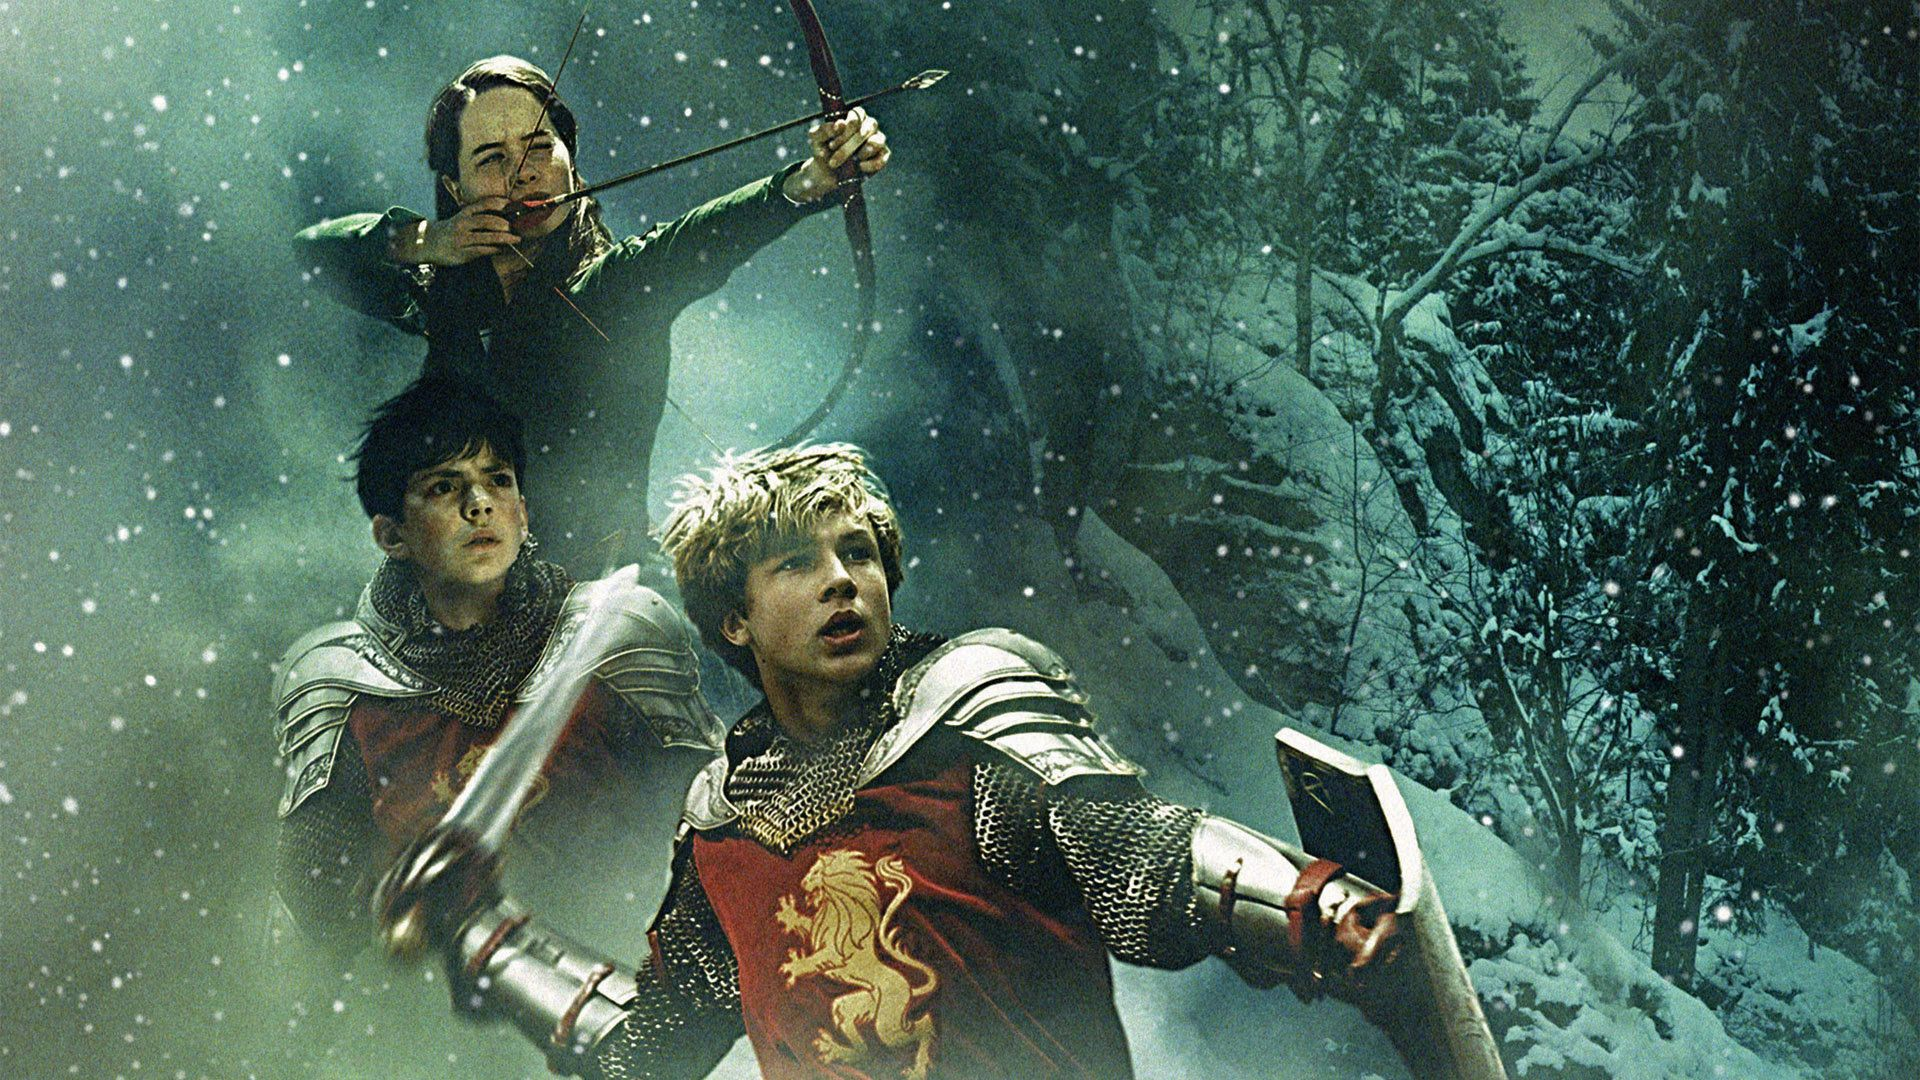 narnia the lion the witch and the wardrobe essay And walden media, based on cs lewis' first book in the chronicles of narnia  series in the lion, the witch and the wardrobe, we meet the four pevensie.